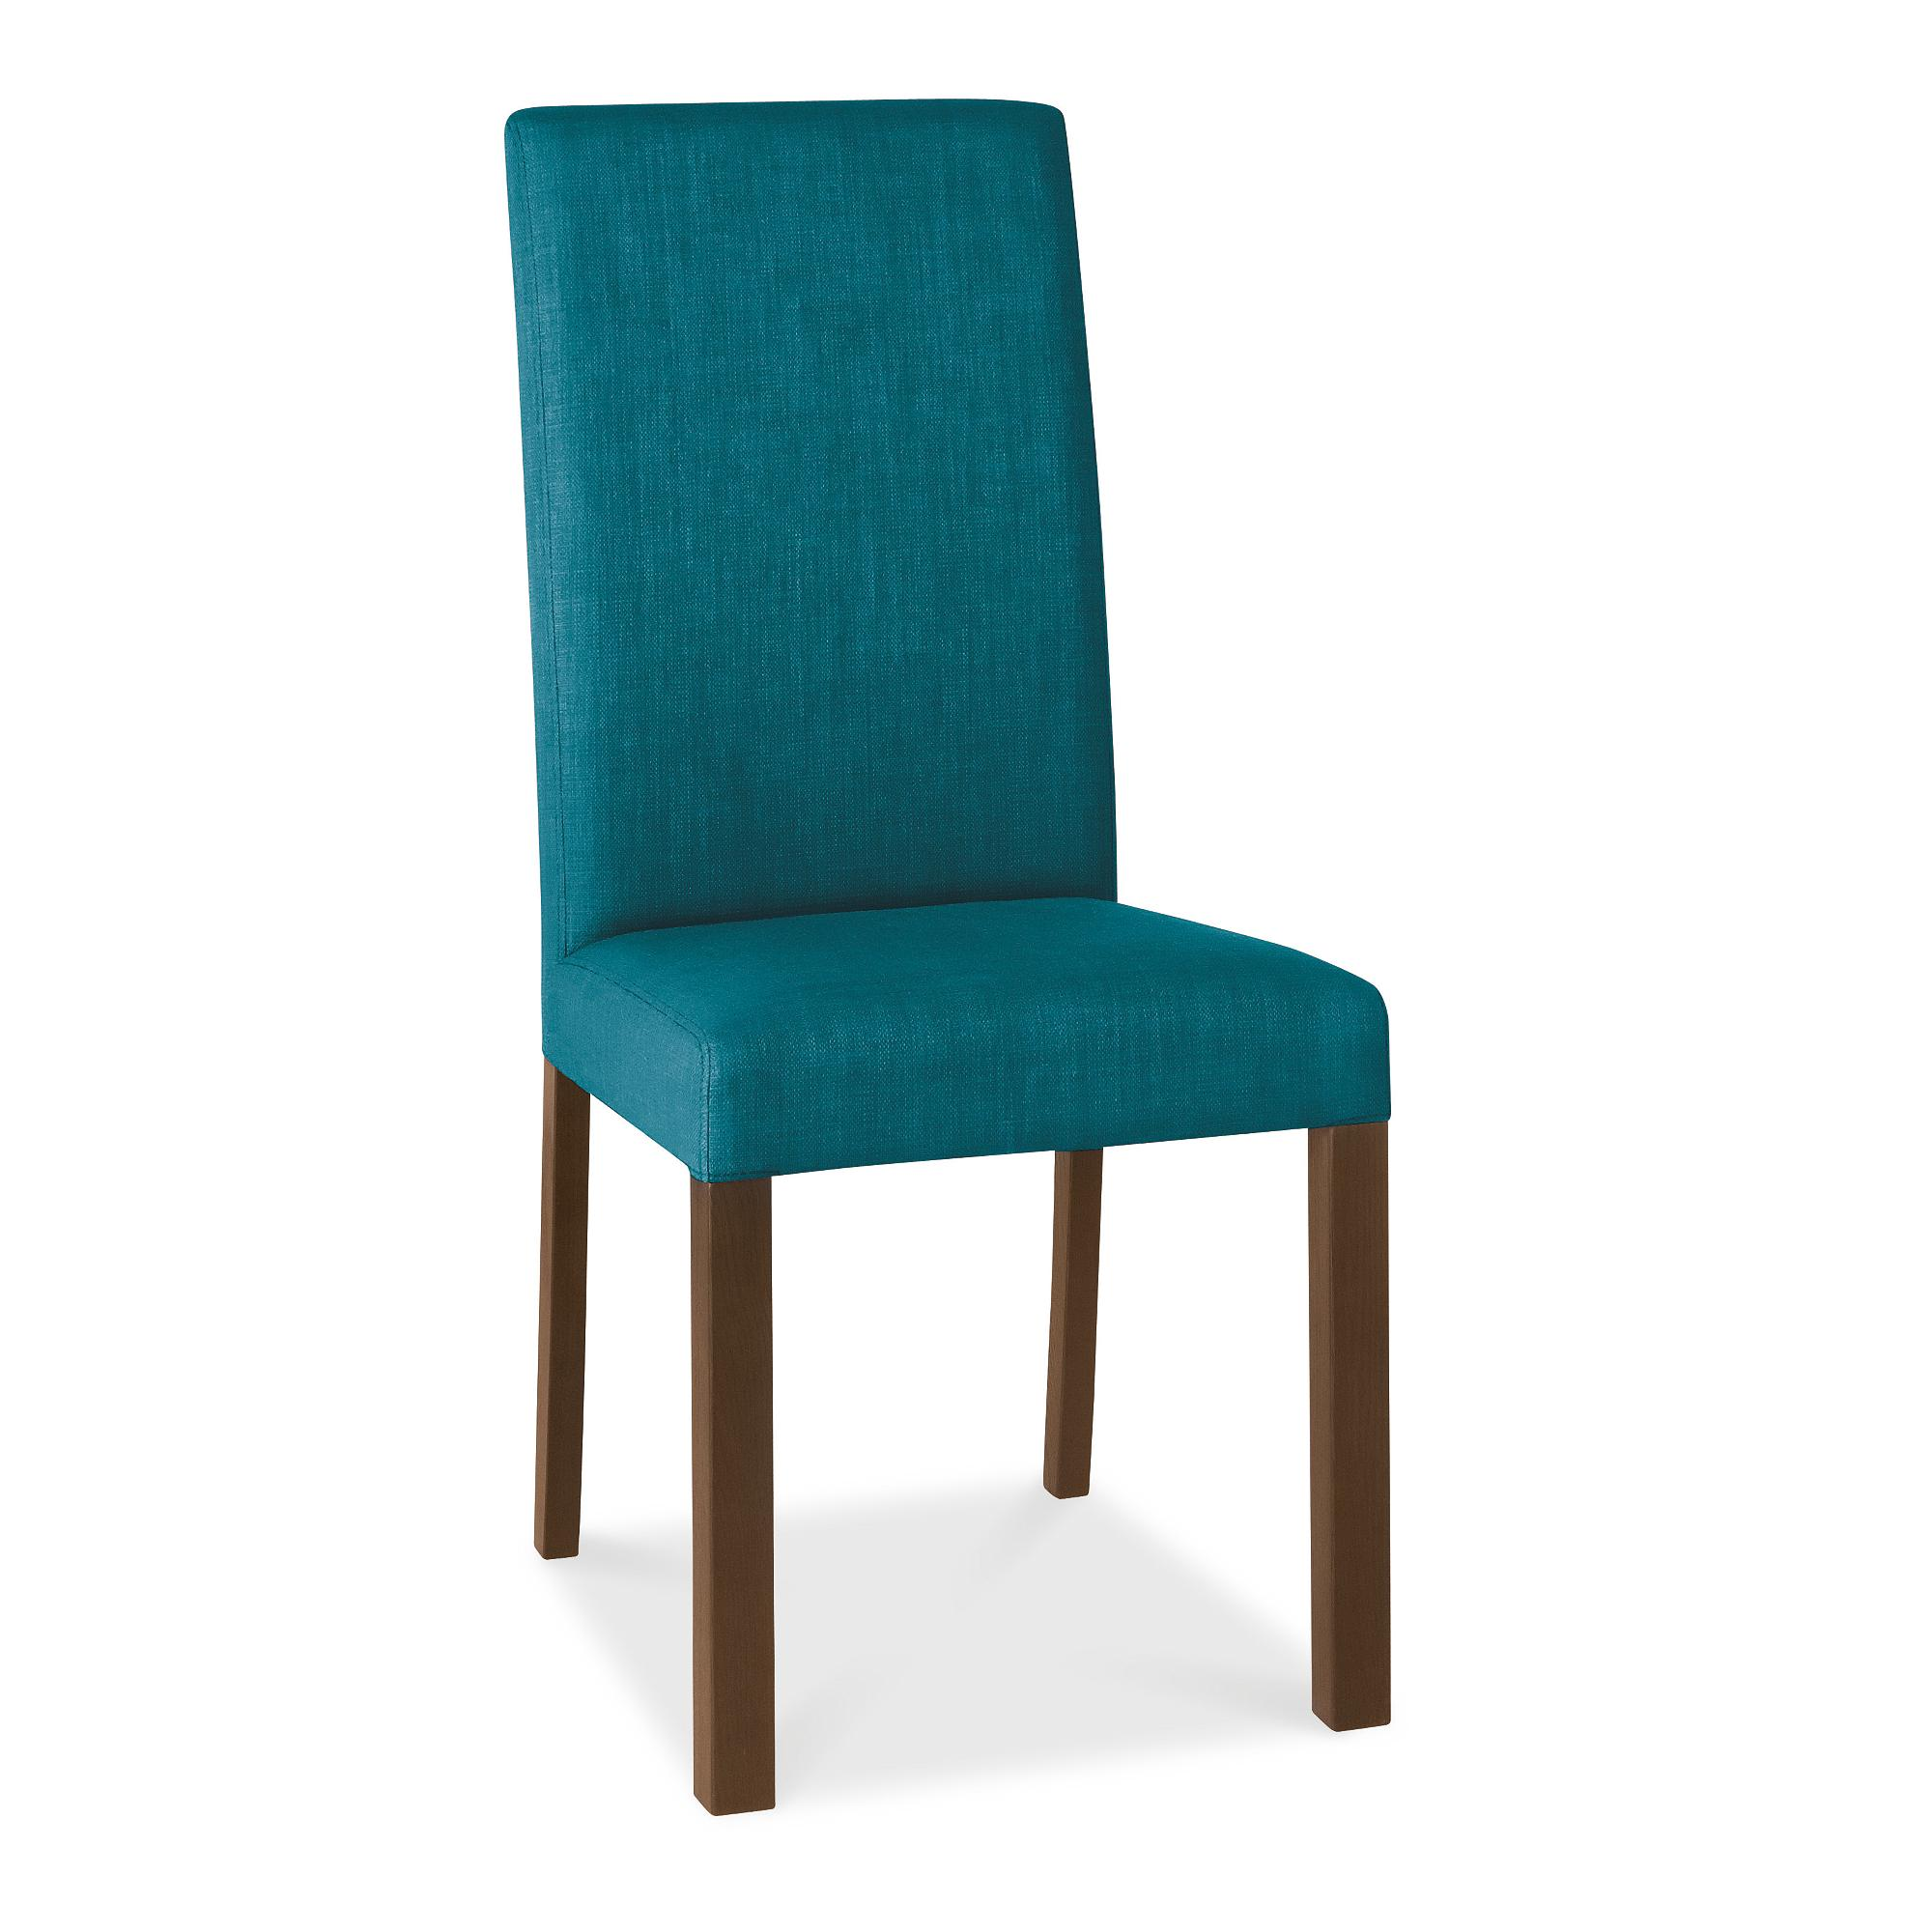 Teal Dining Room Chairs Dining Room Chairs Blue Blue Dining Room With Blue Paint Color